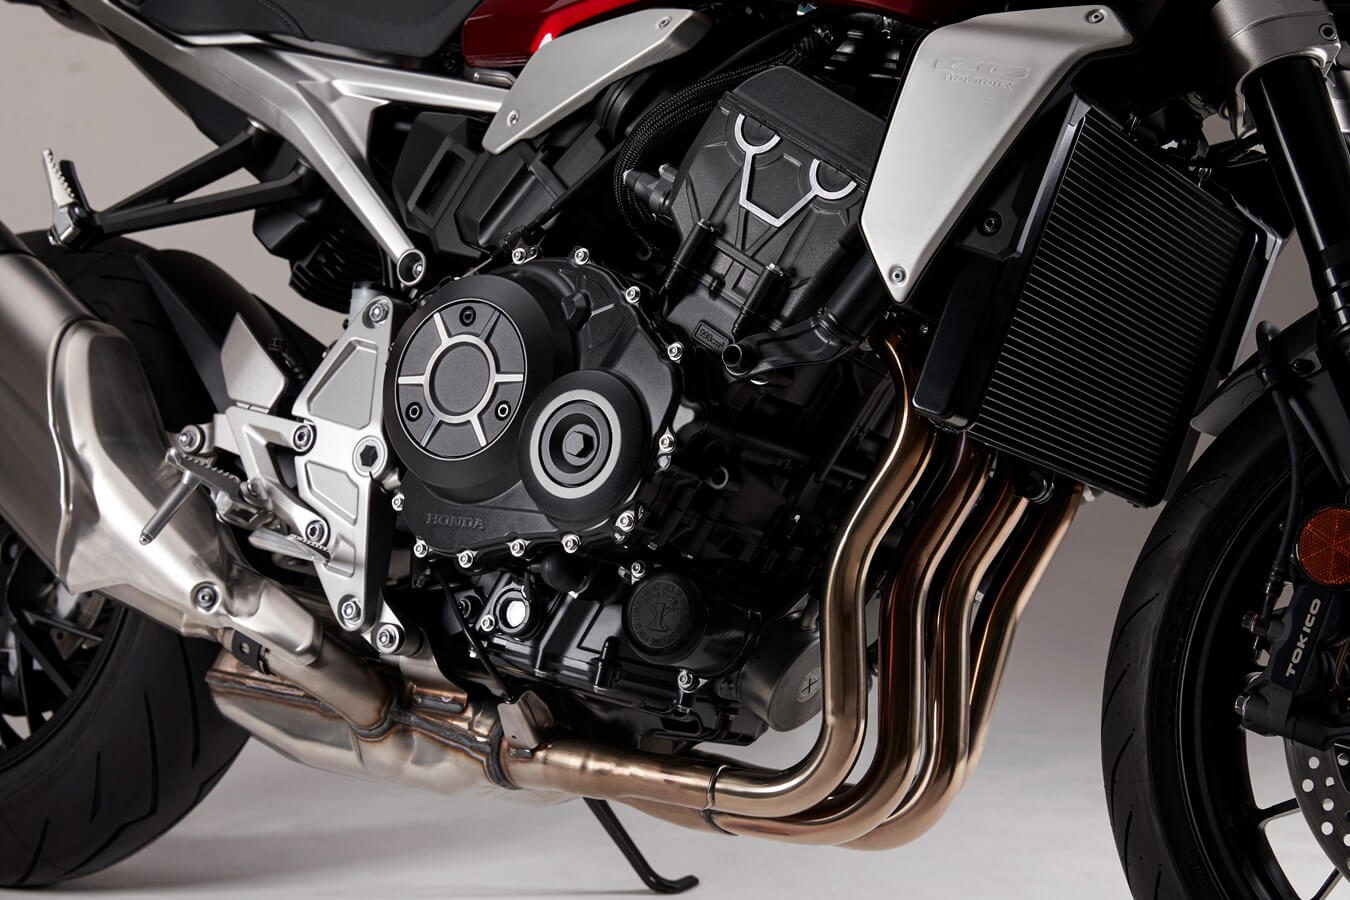 2021 Honda CB1000R Engine Review / Specs | Neo Sports Cafe CB 1000R